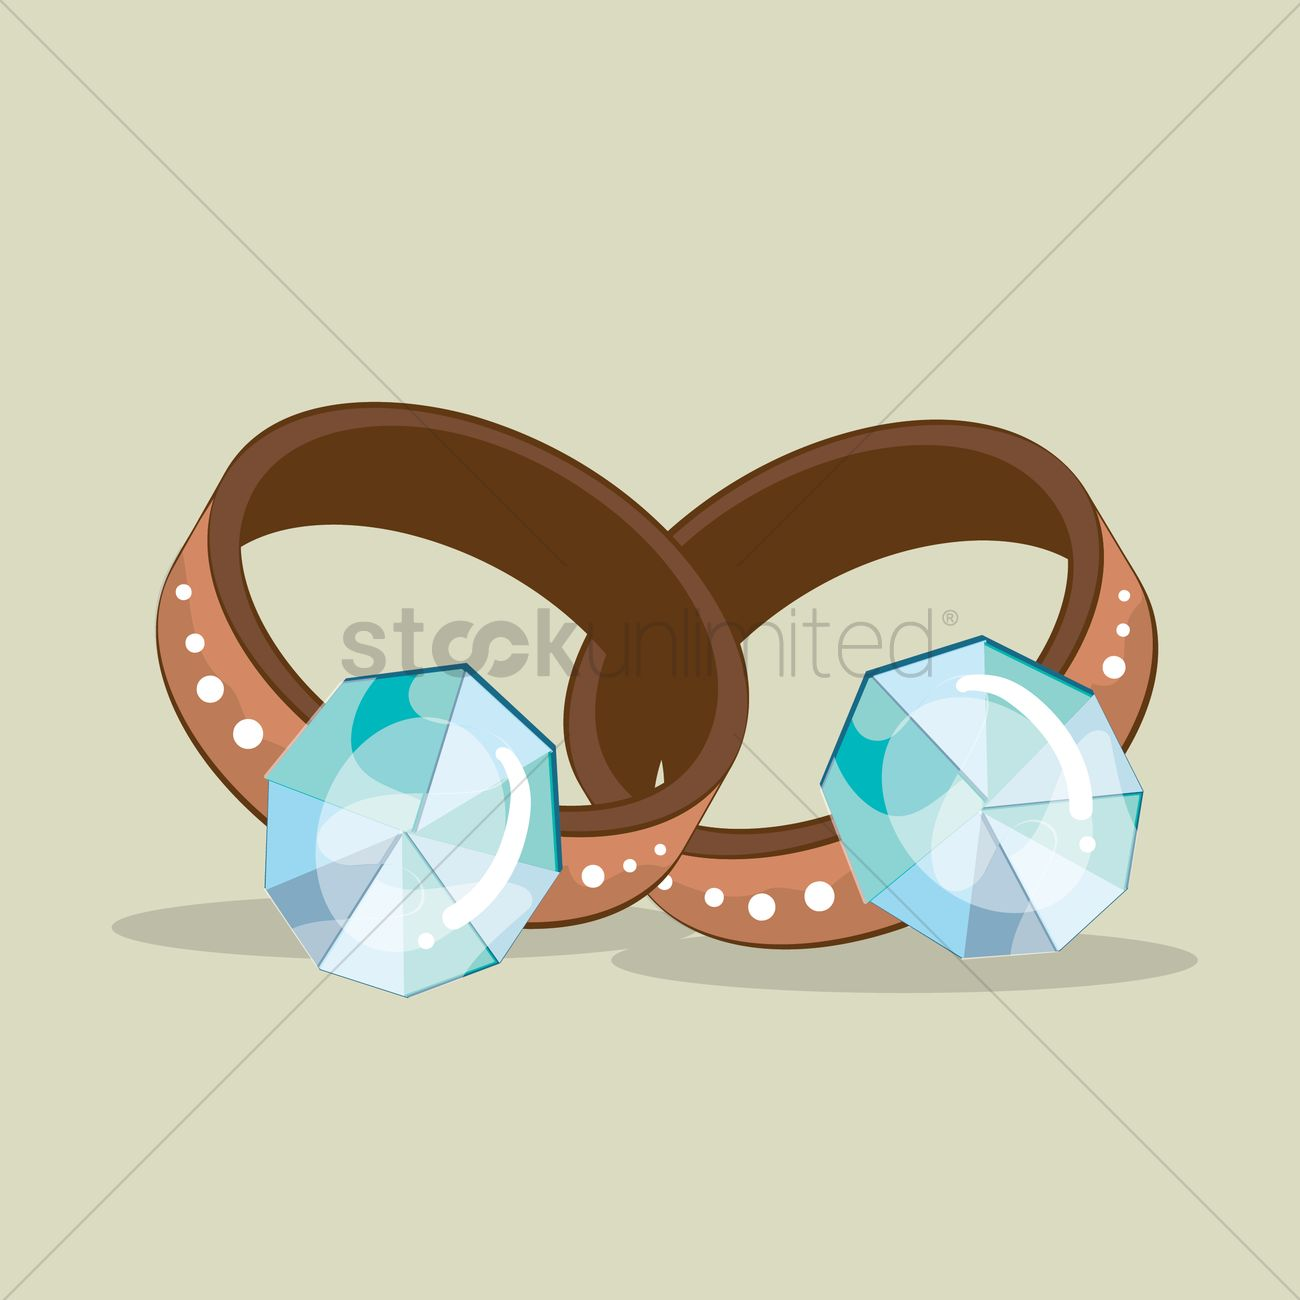 wedding rings vector image - 1327480 | stockunlimited